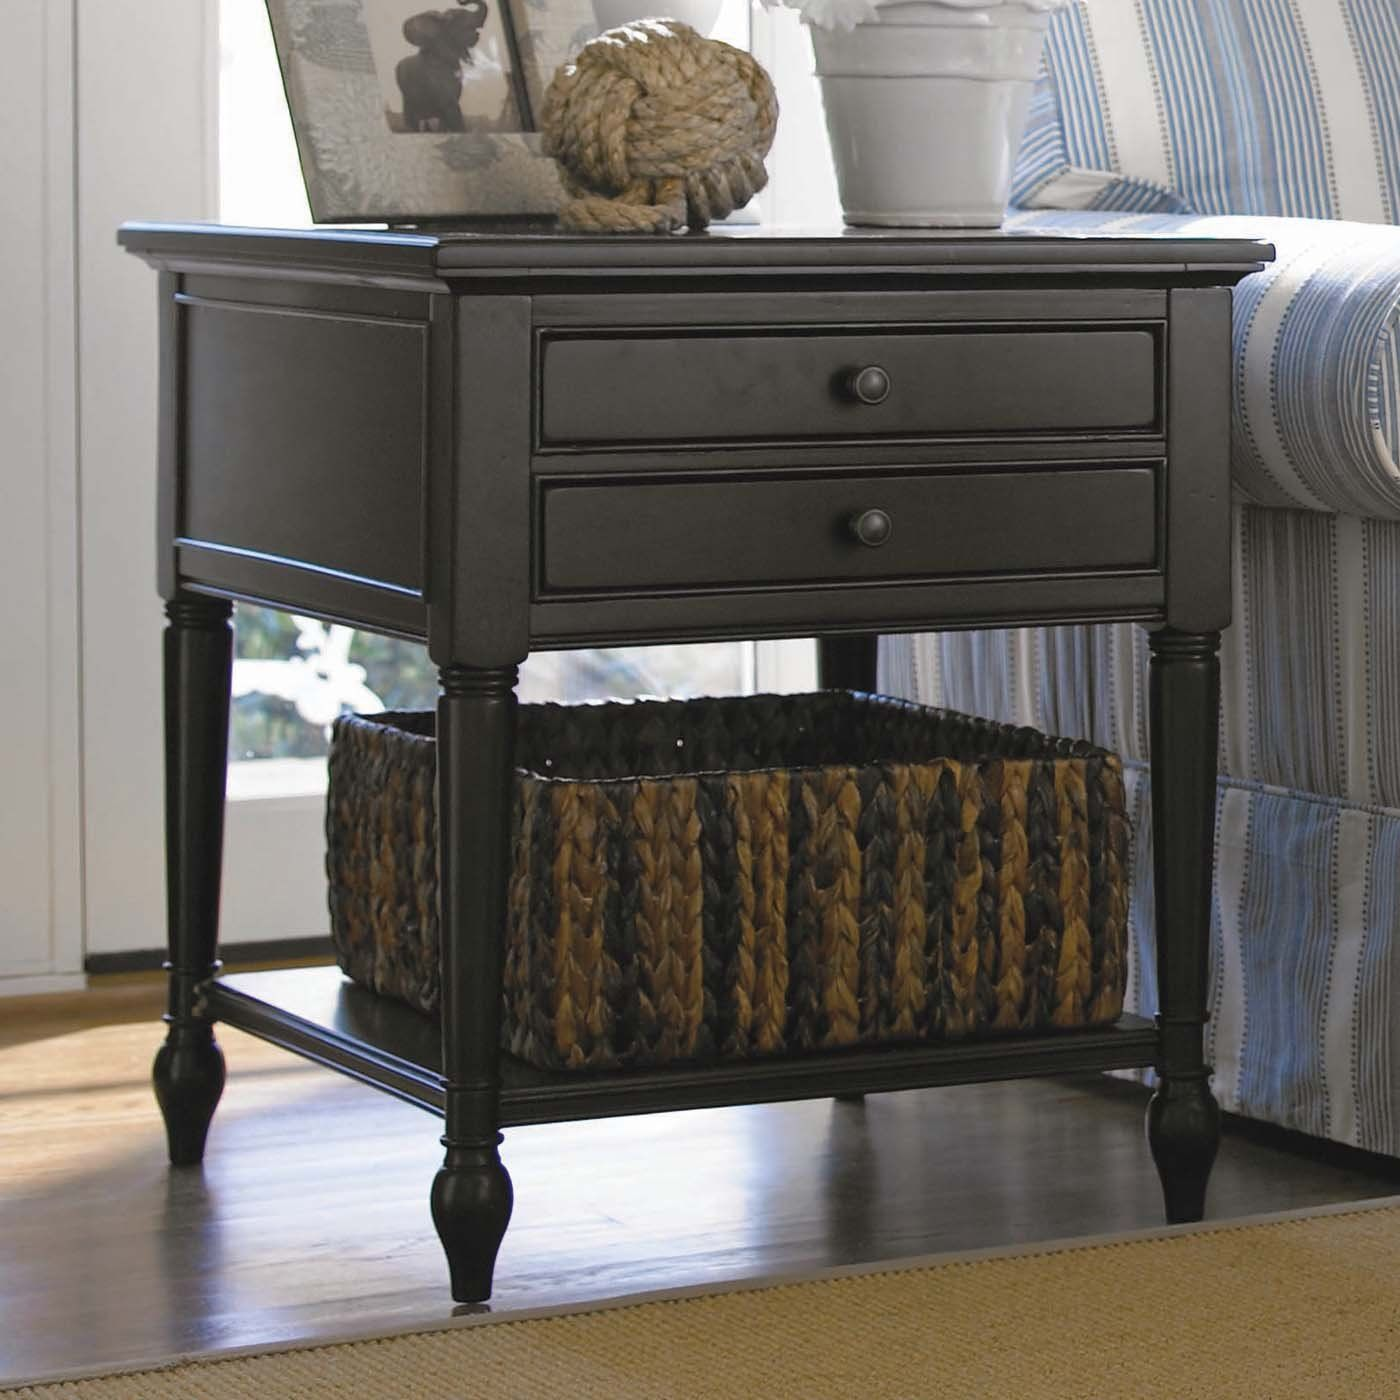 Universal furniture 988802 summer hill end table midnight